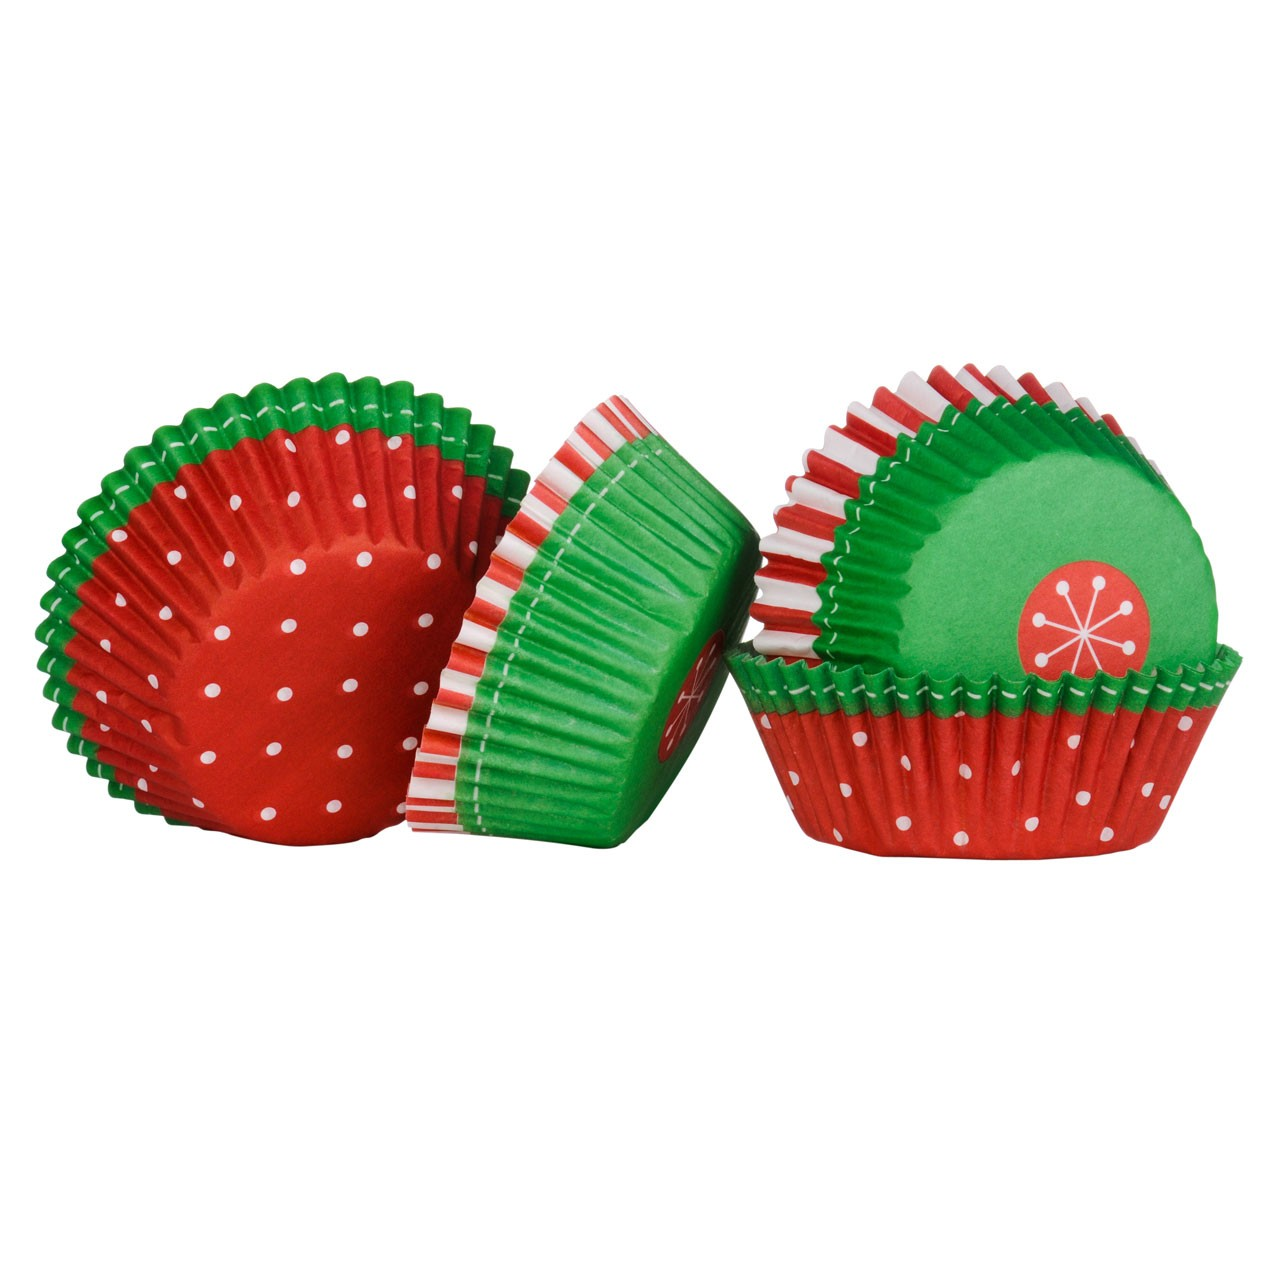 Medium Cupcake Cases Christmas 60pcs